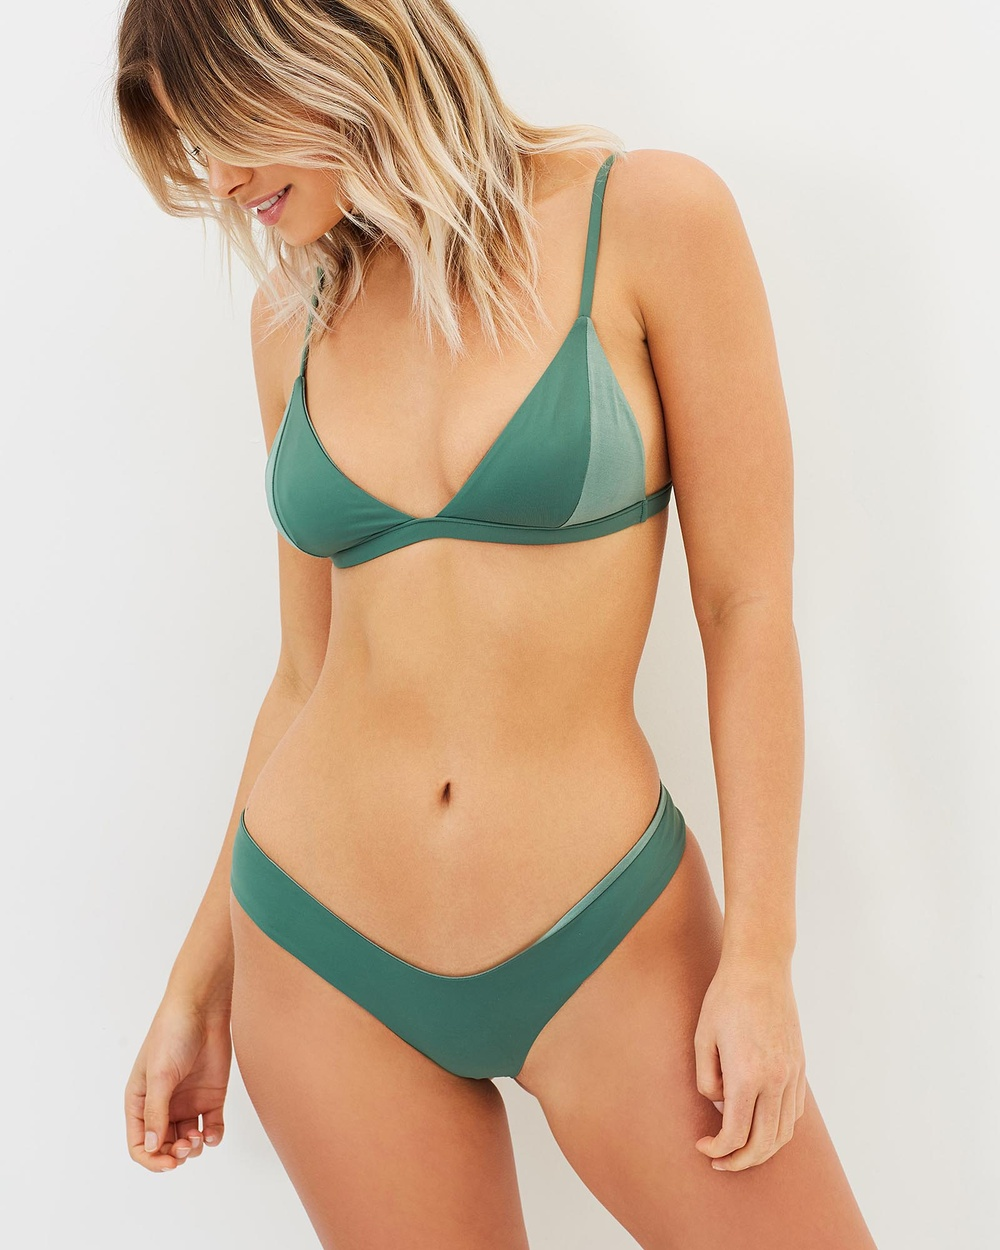 Bond-Eye Swimwear Suns Out Reversible Briefs Bikini Bottoms Malachite Suns Out Reversible Briefs